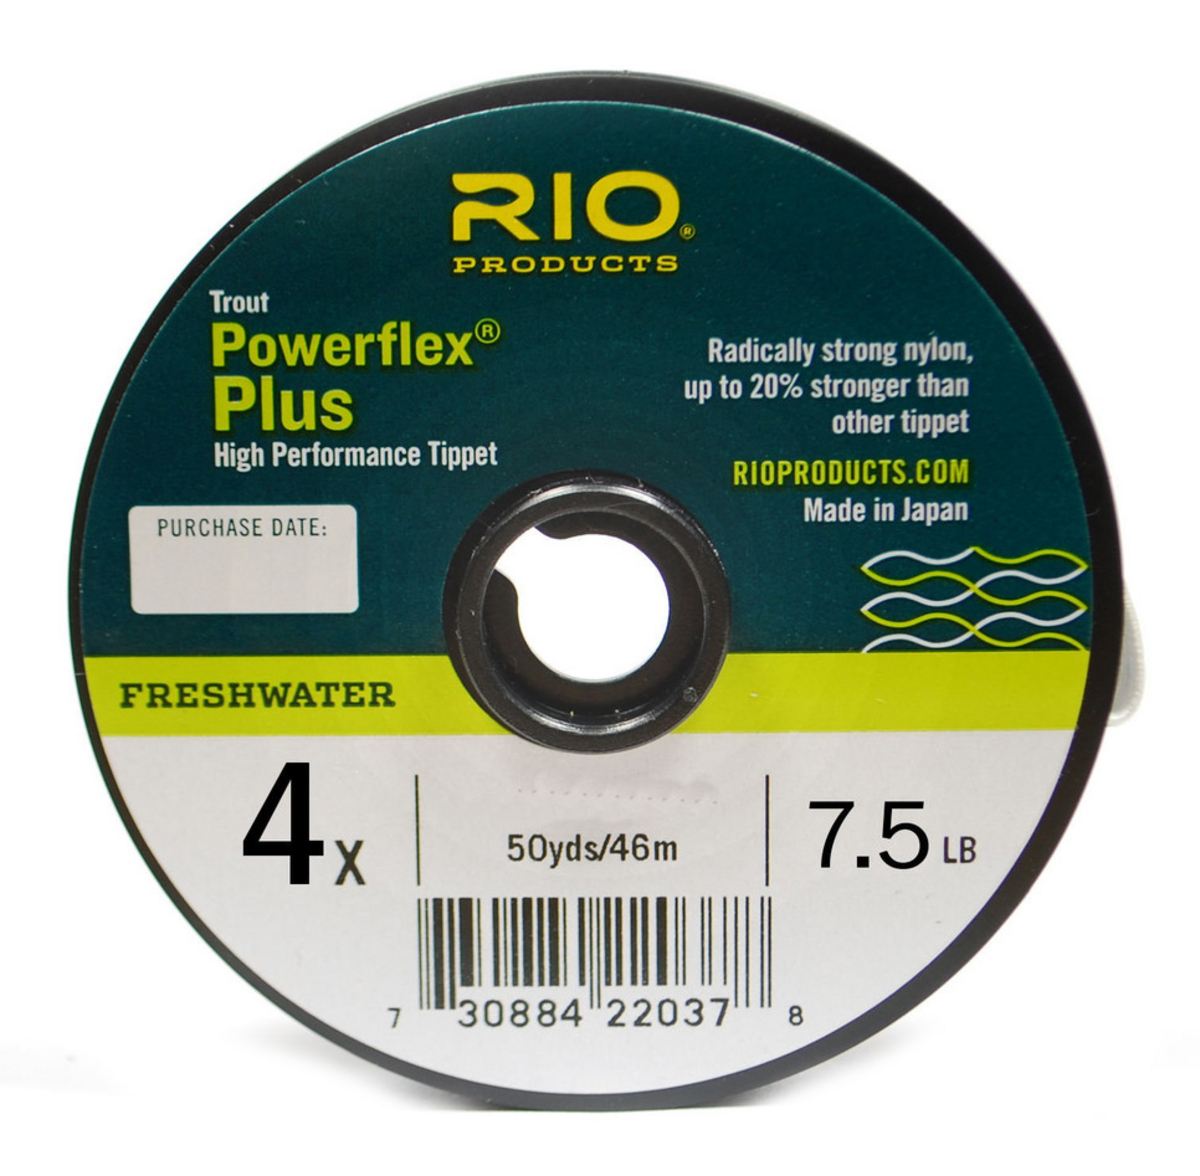 Rio Products Powerflex Plus Tippet 4X